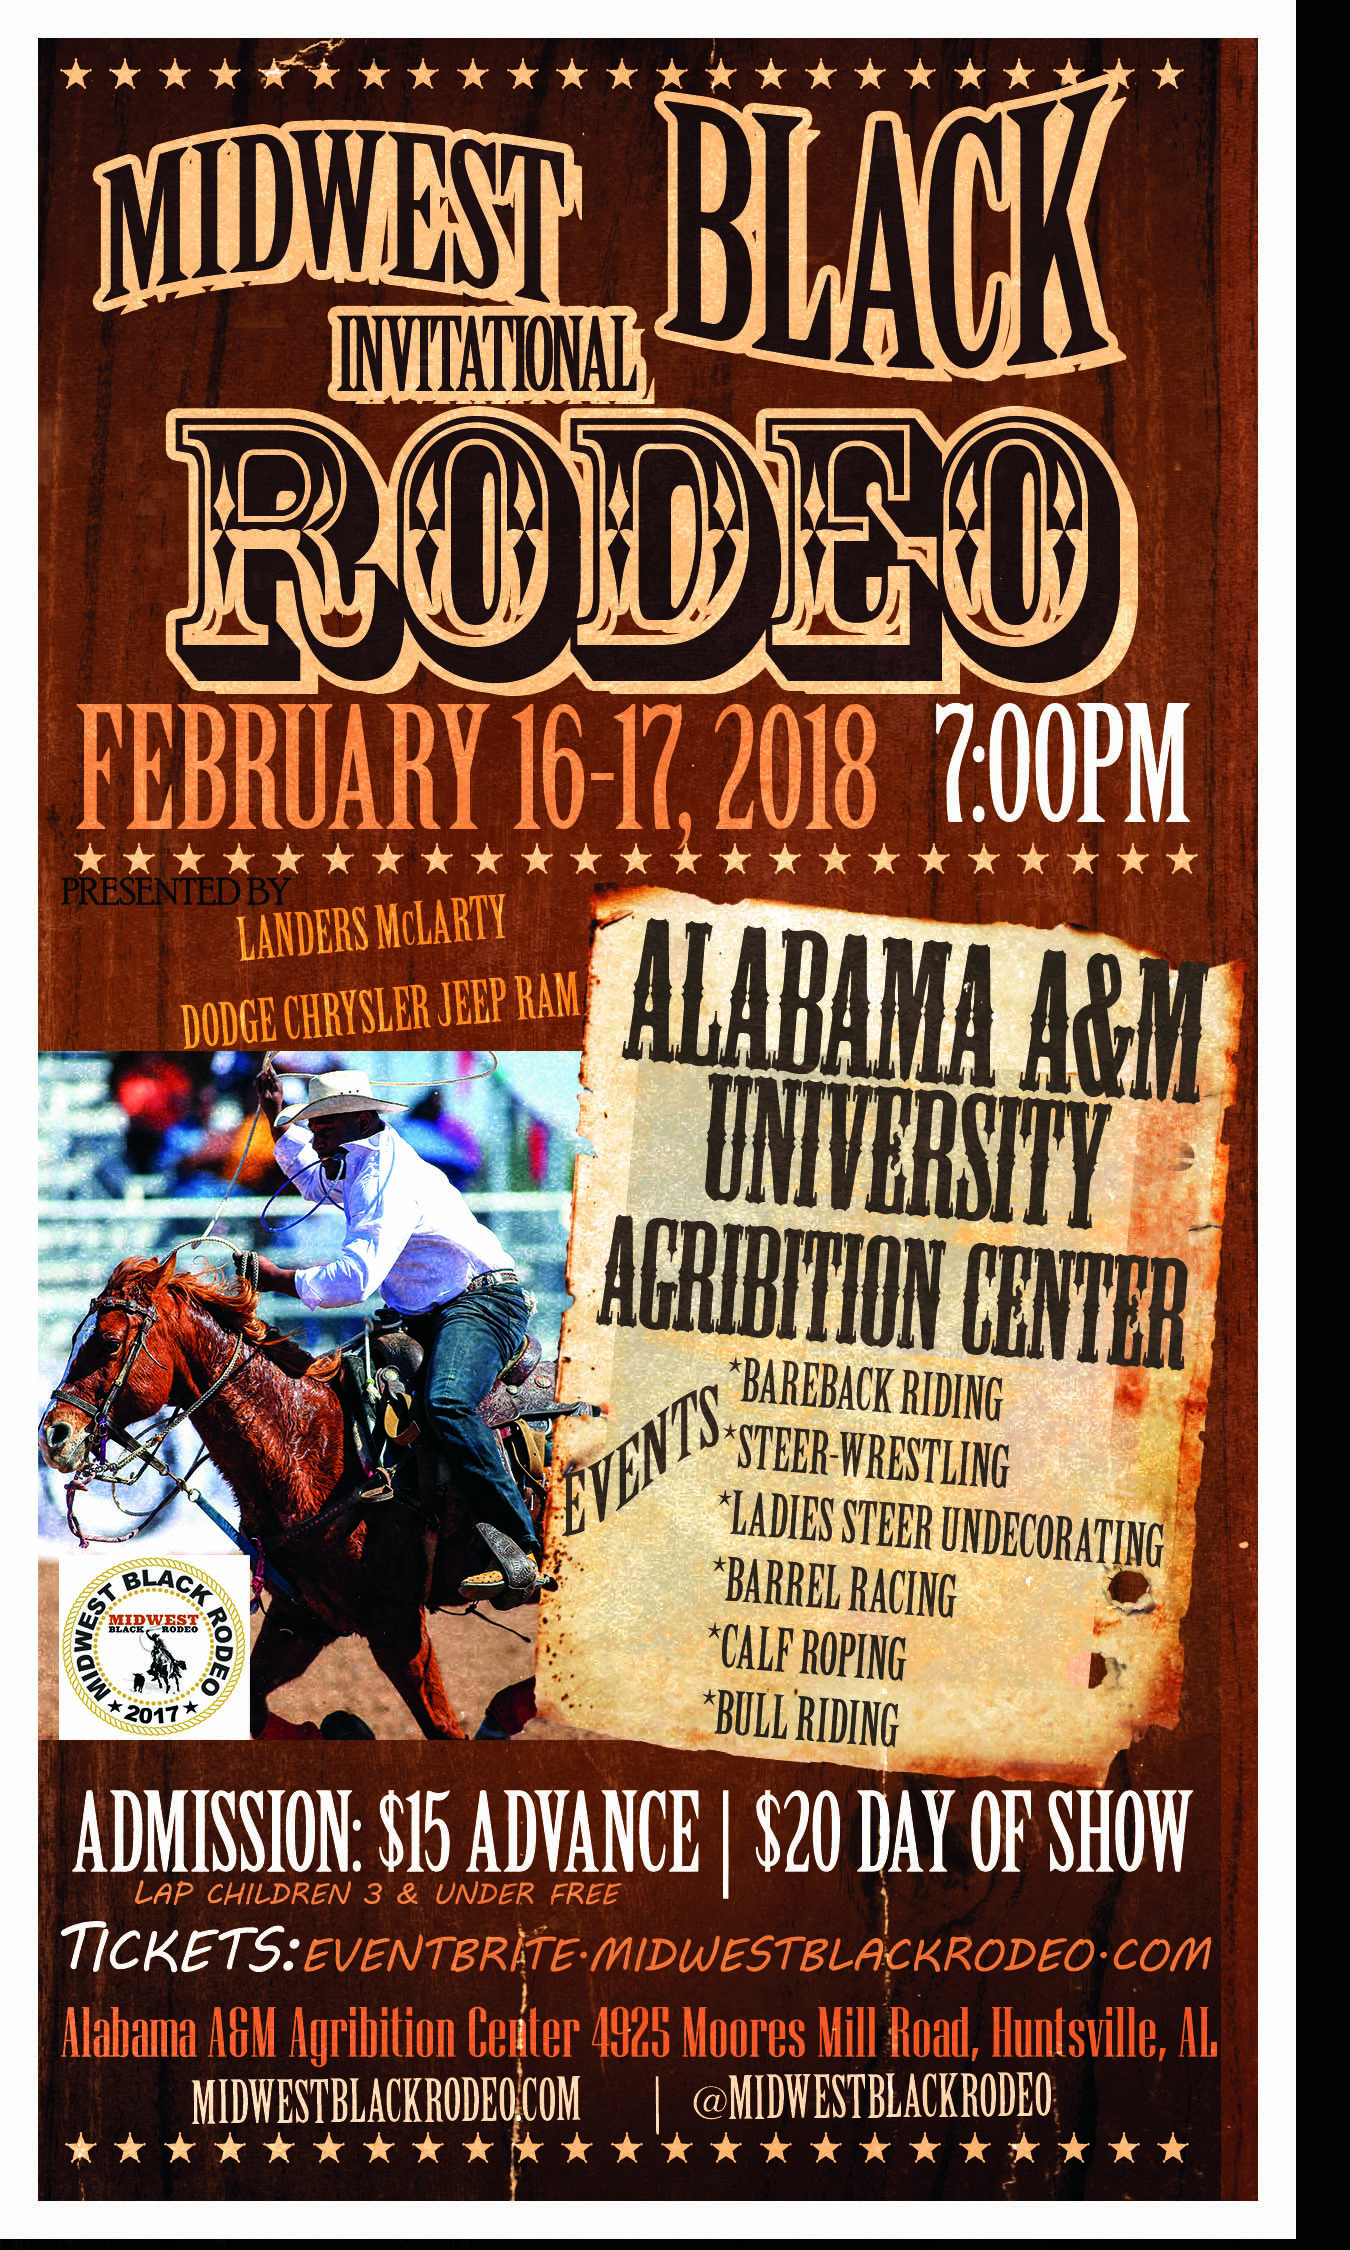 Midwest Black Rodeo Flyer